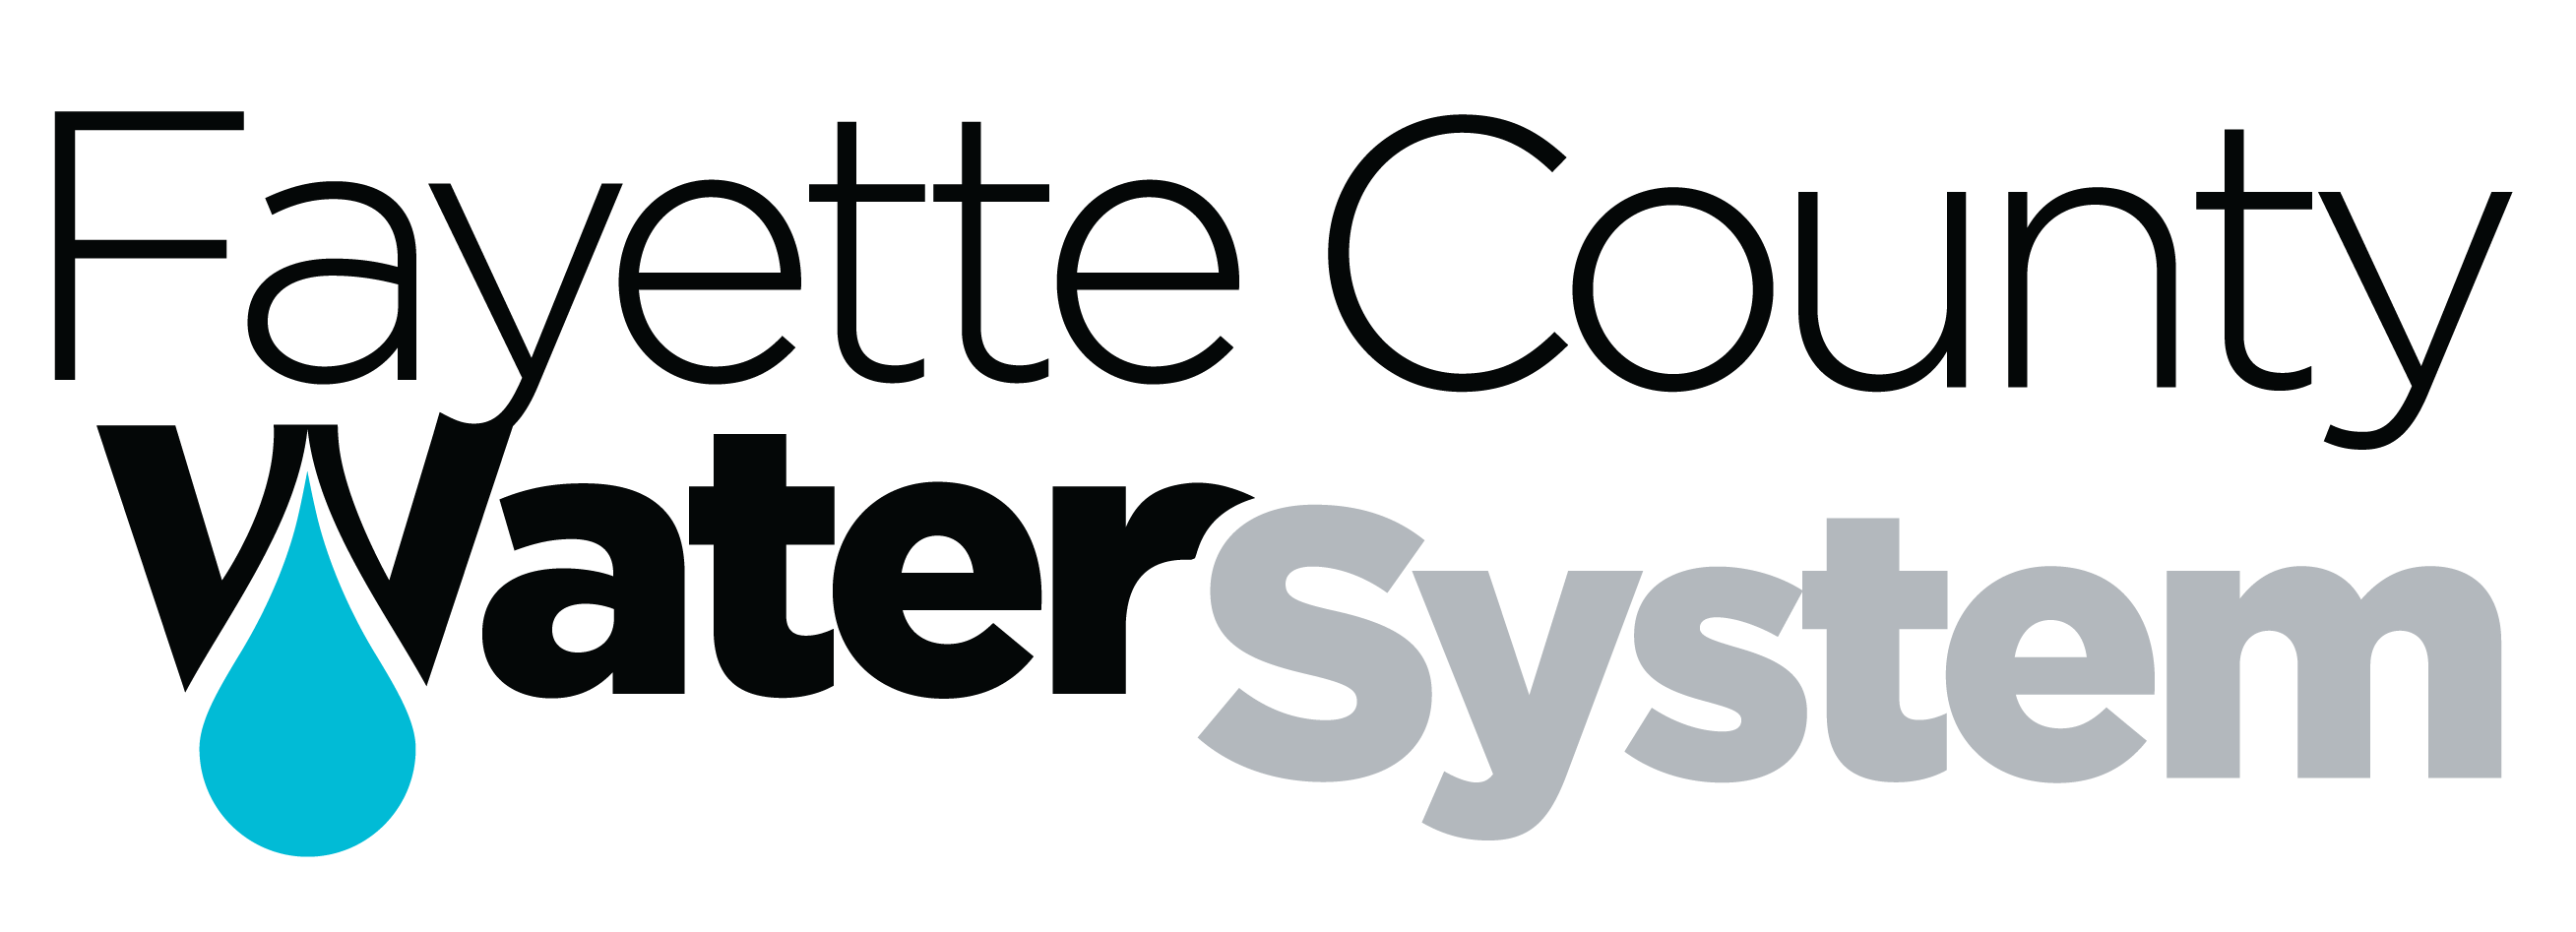 Click to go to the Fayette County Water System web page